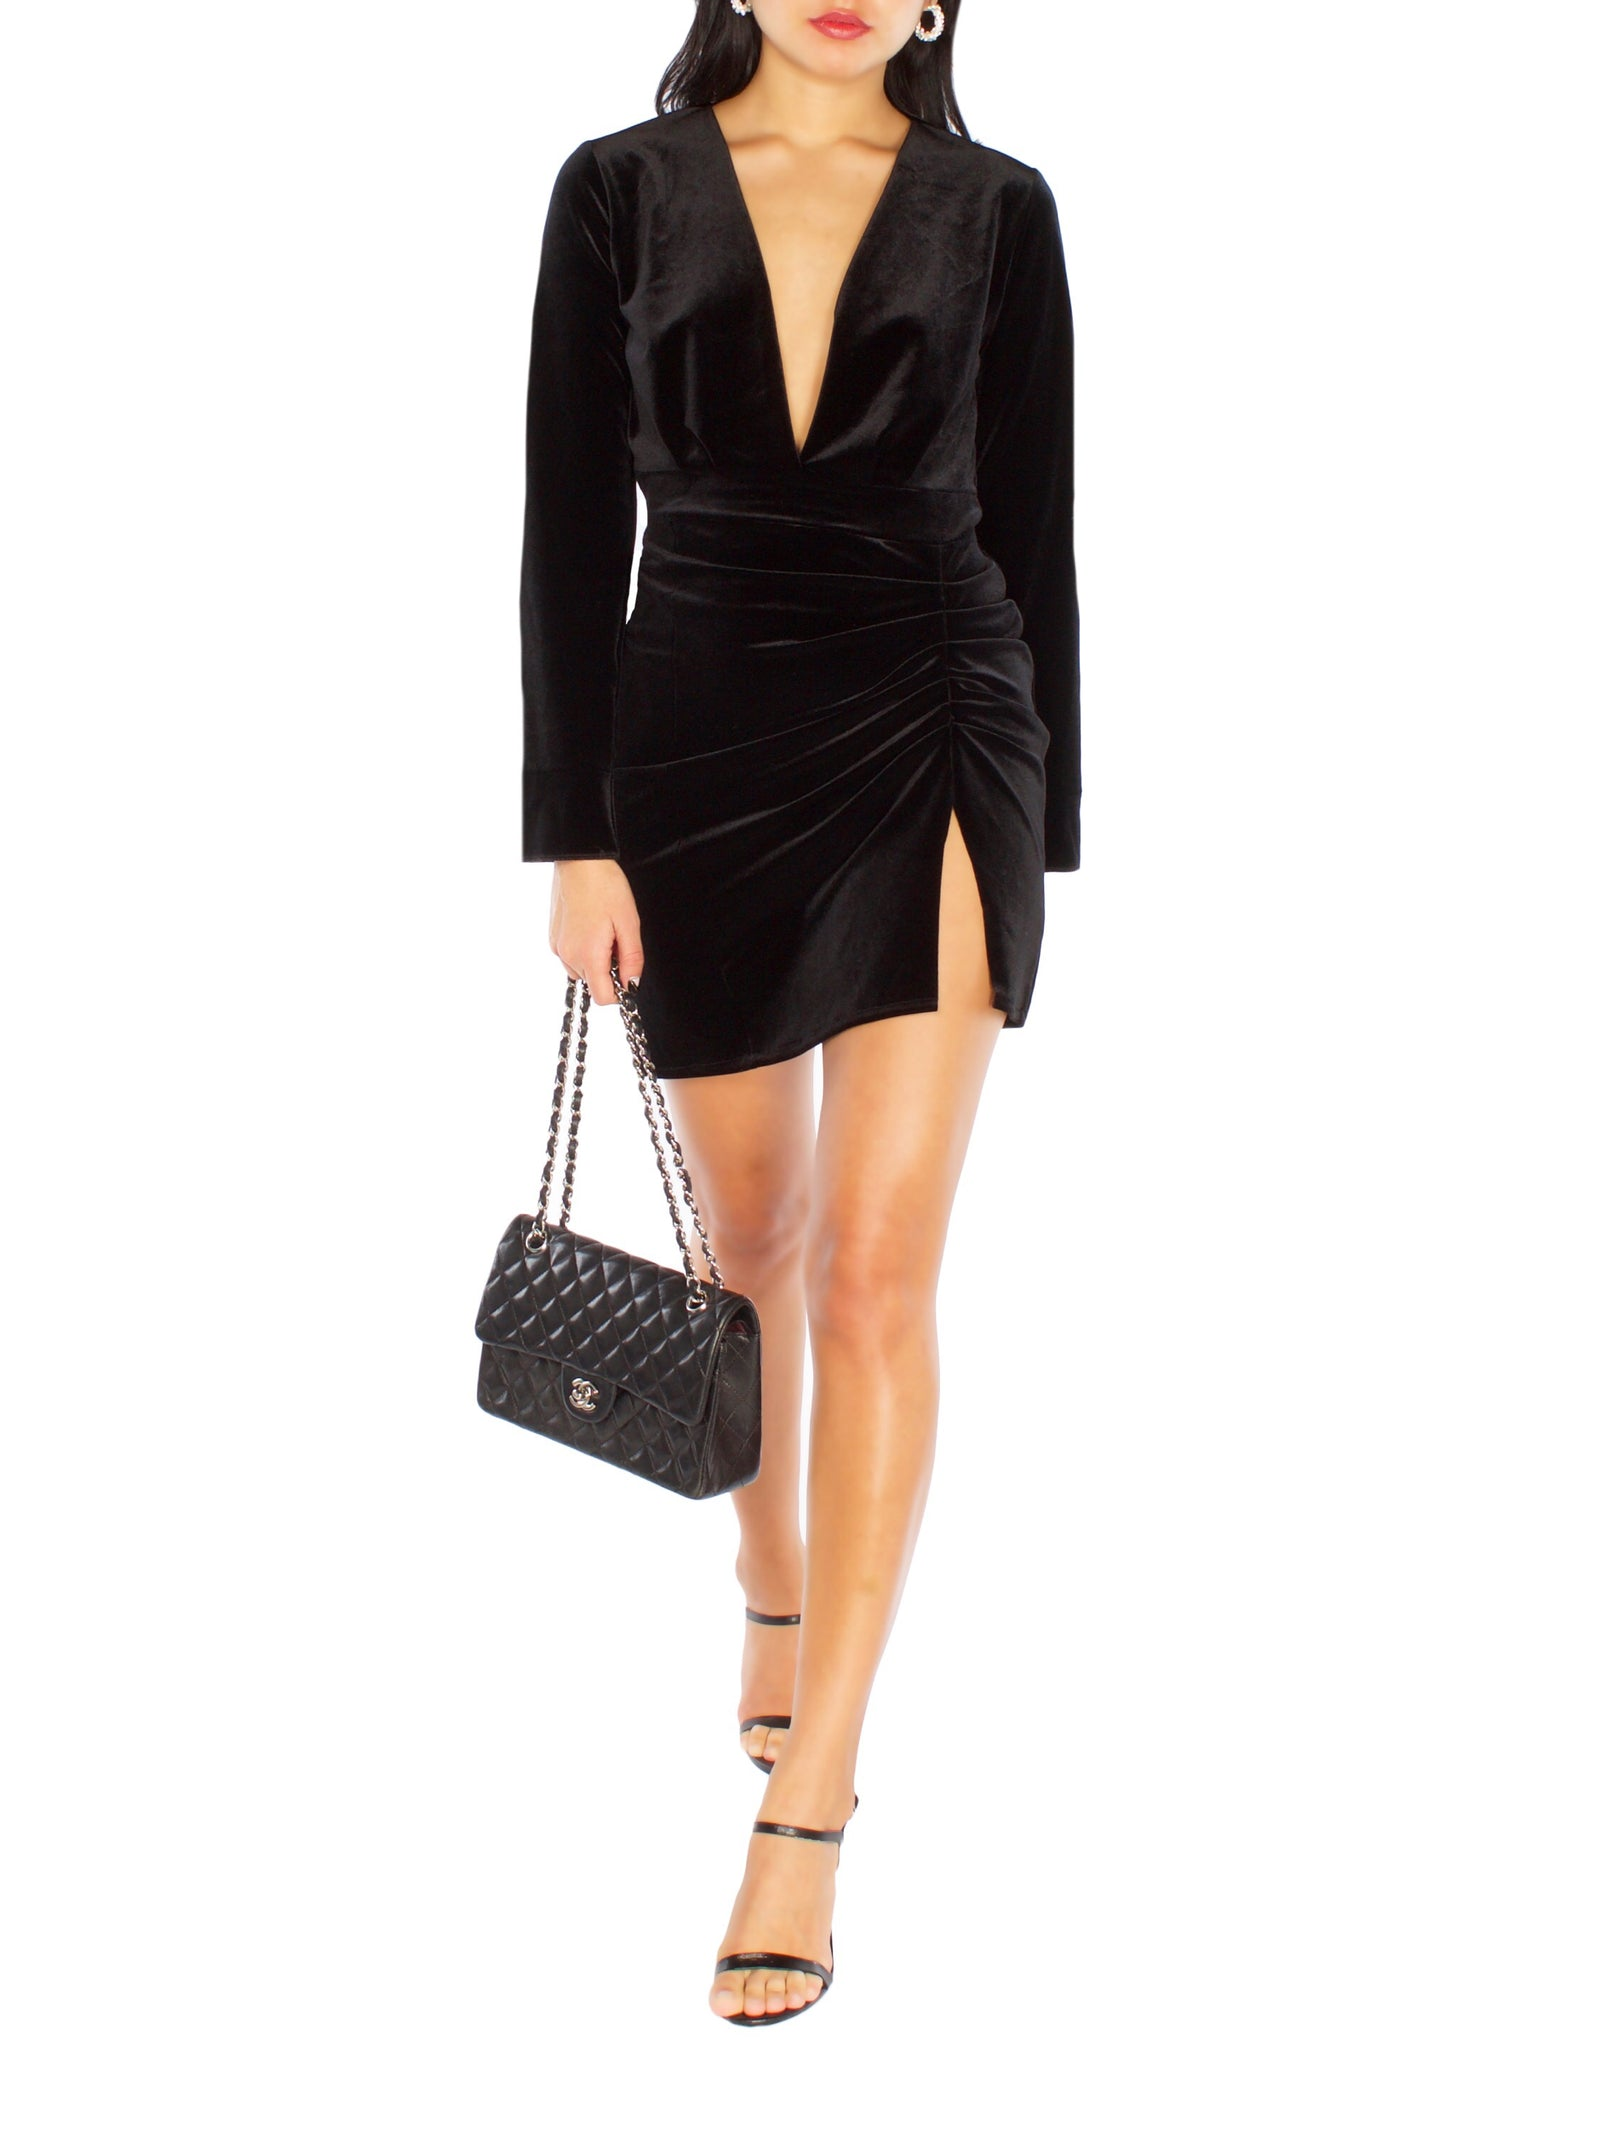 CHLOE Velvet Mini Slit Dress - PRADEGAL